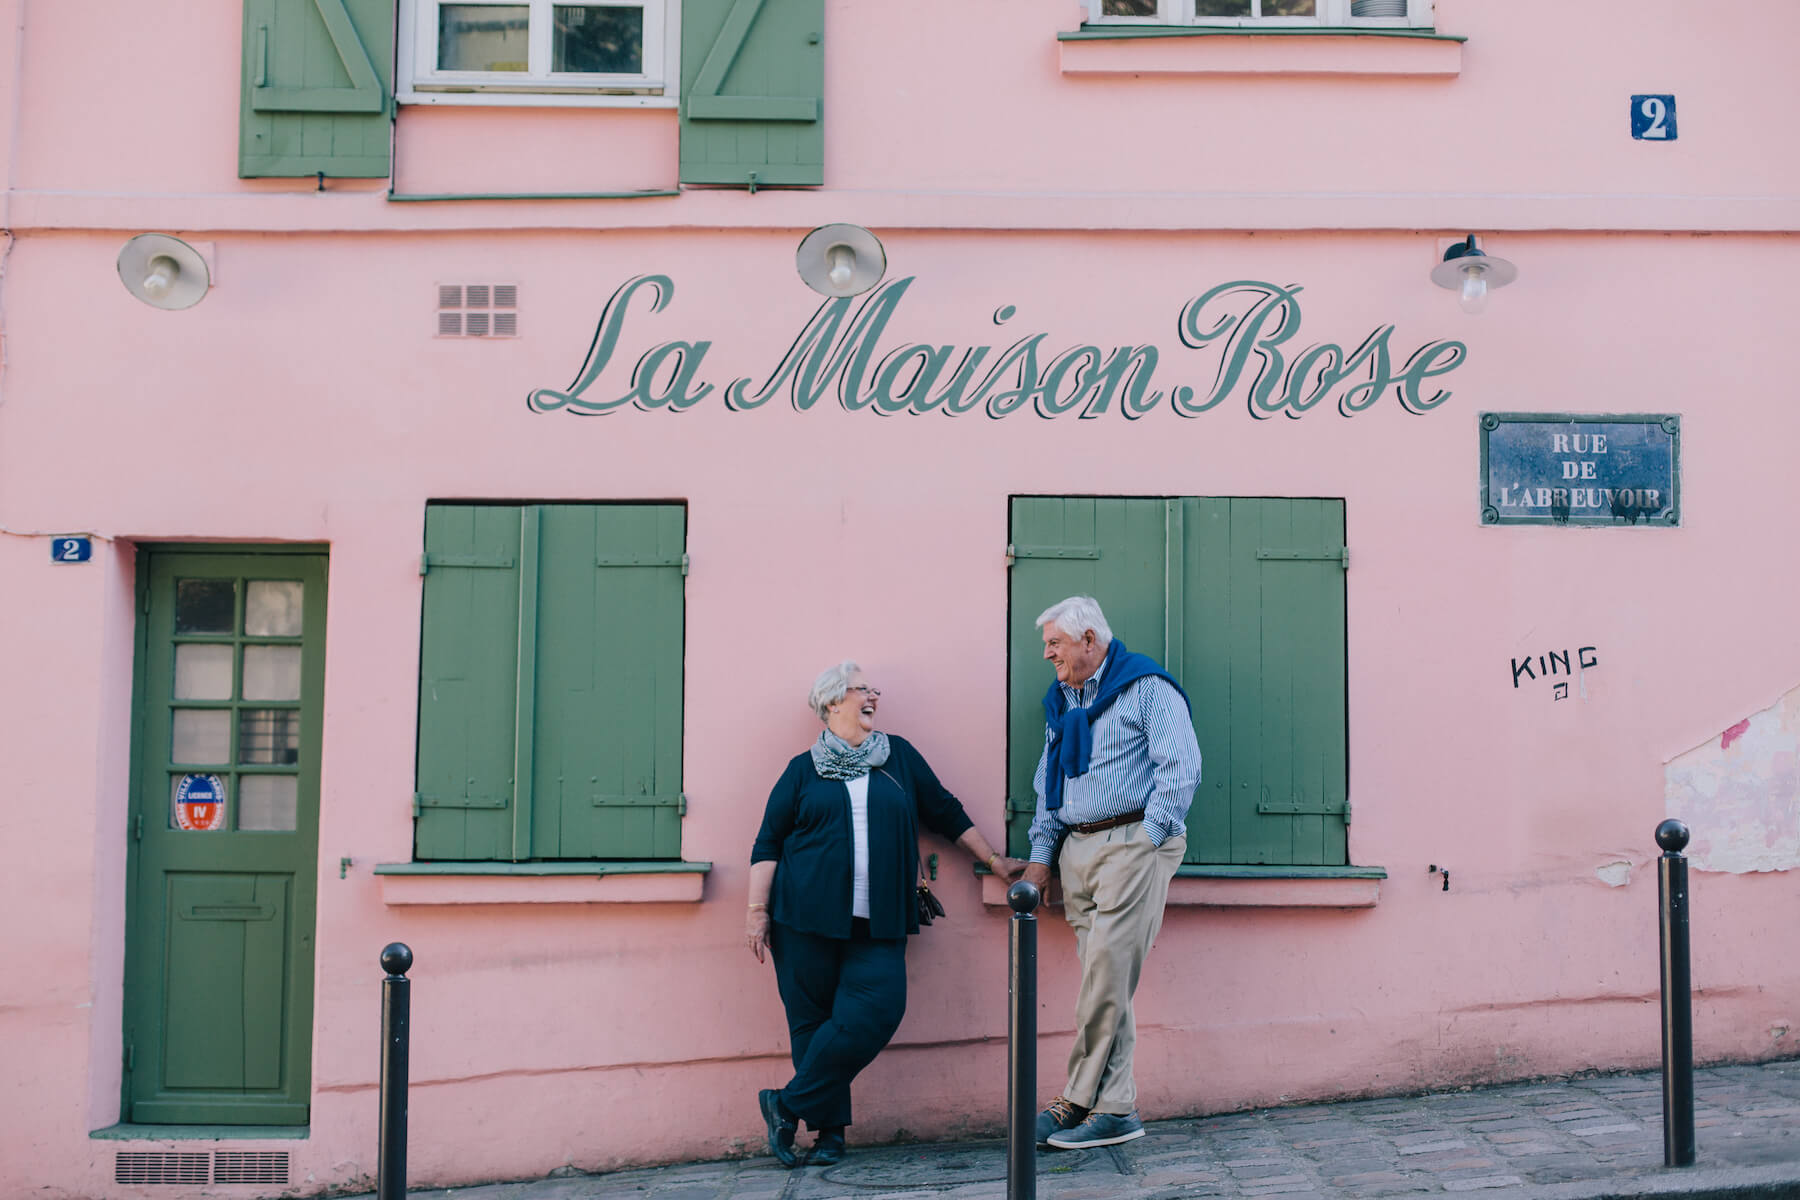 Mature couple laughing together in front of pink feature wall at La Maison Rose in Paris, France